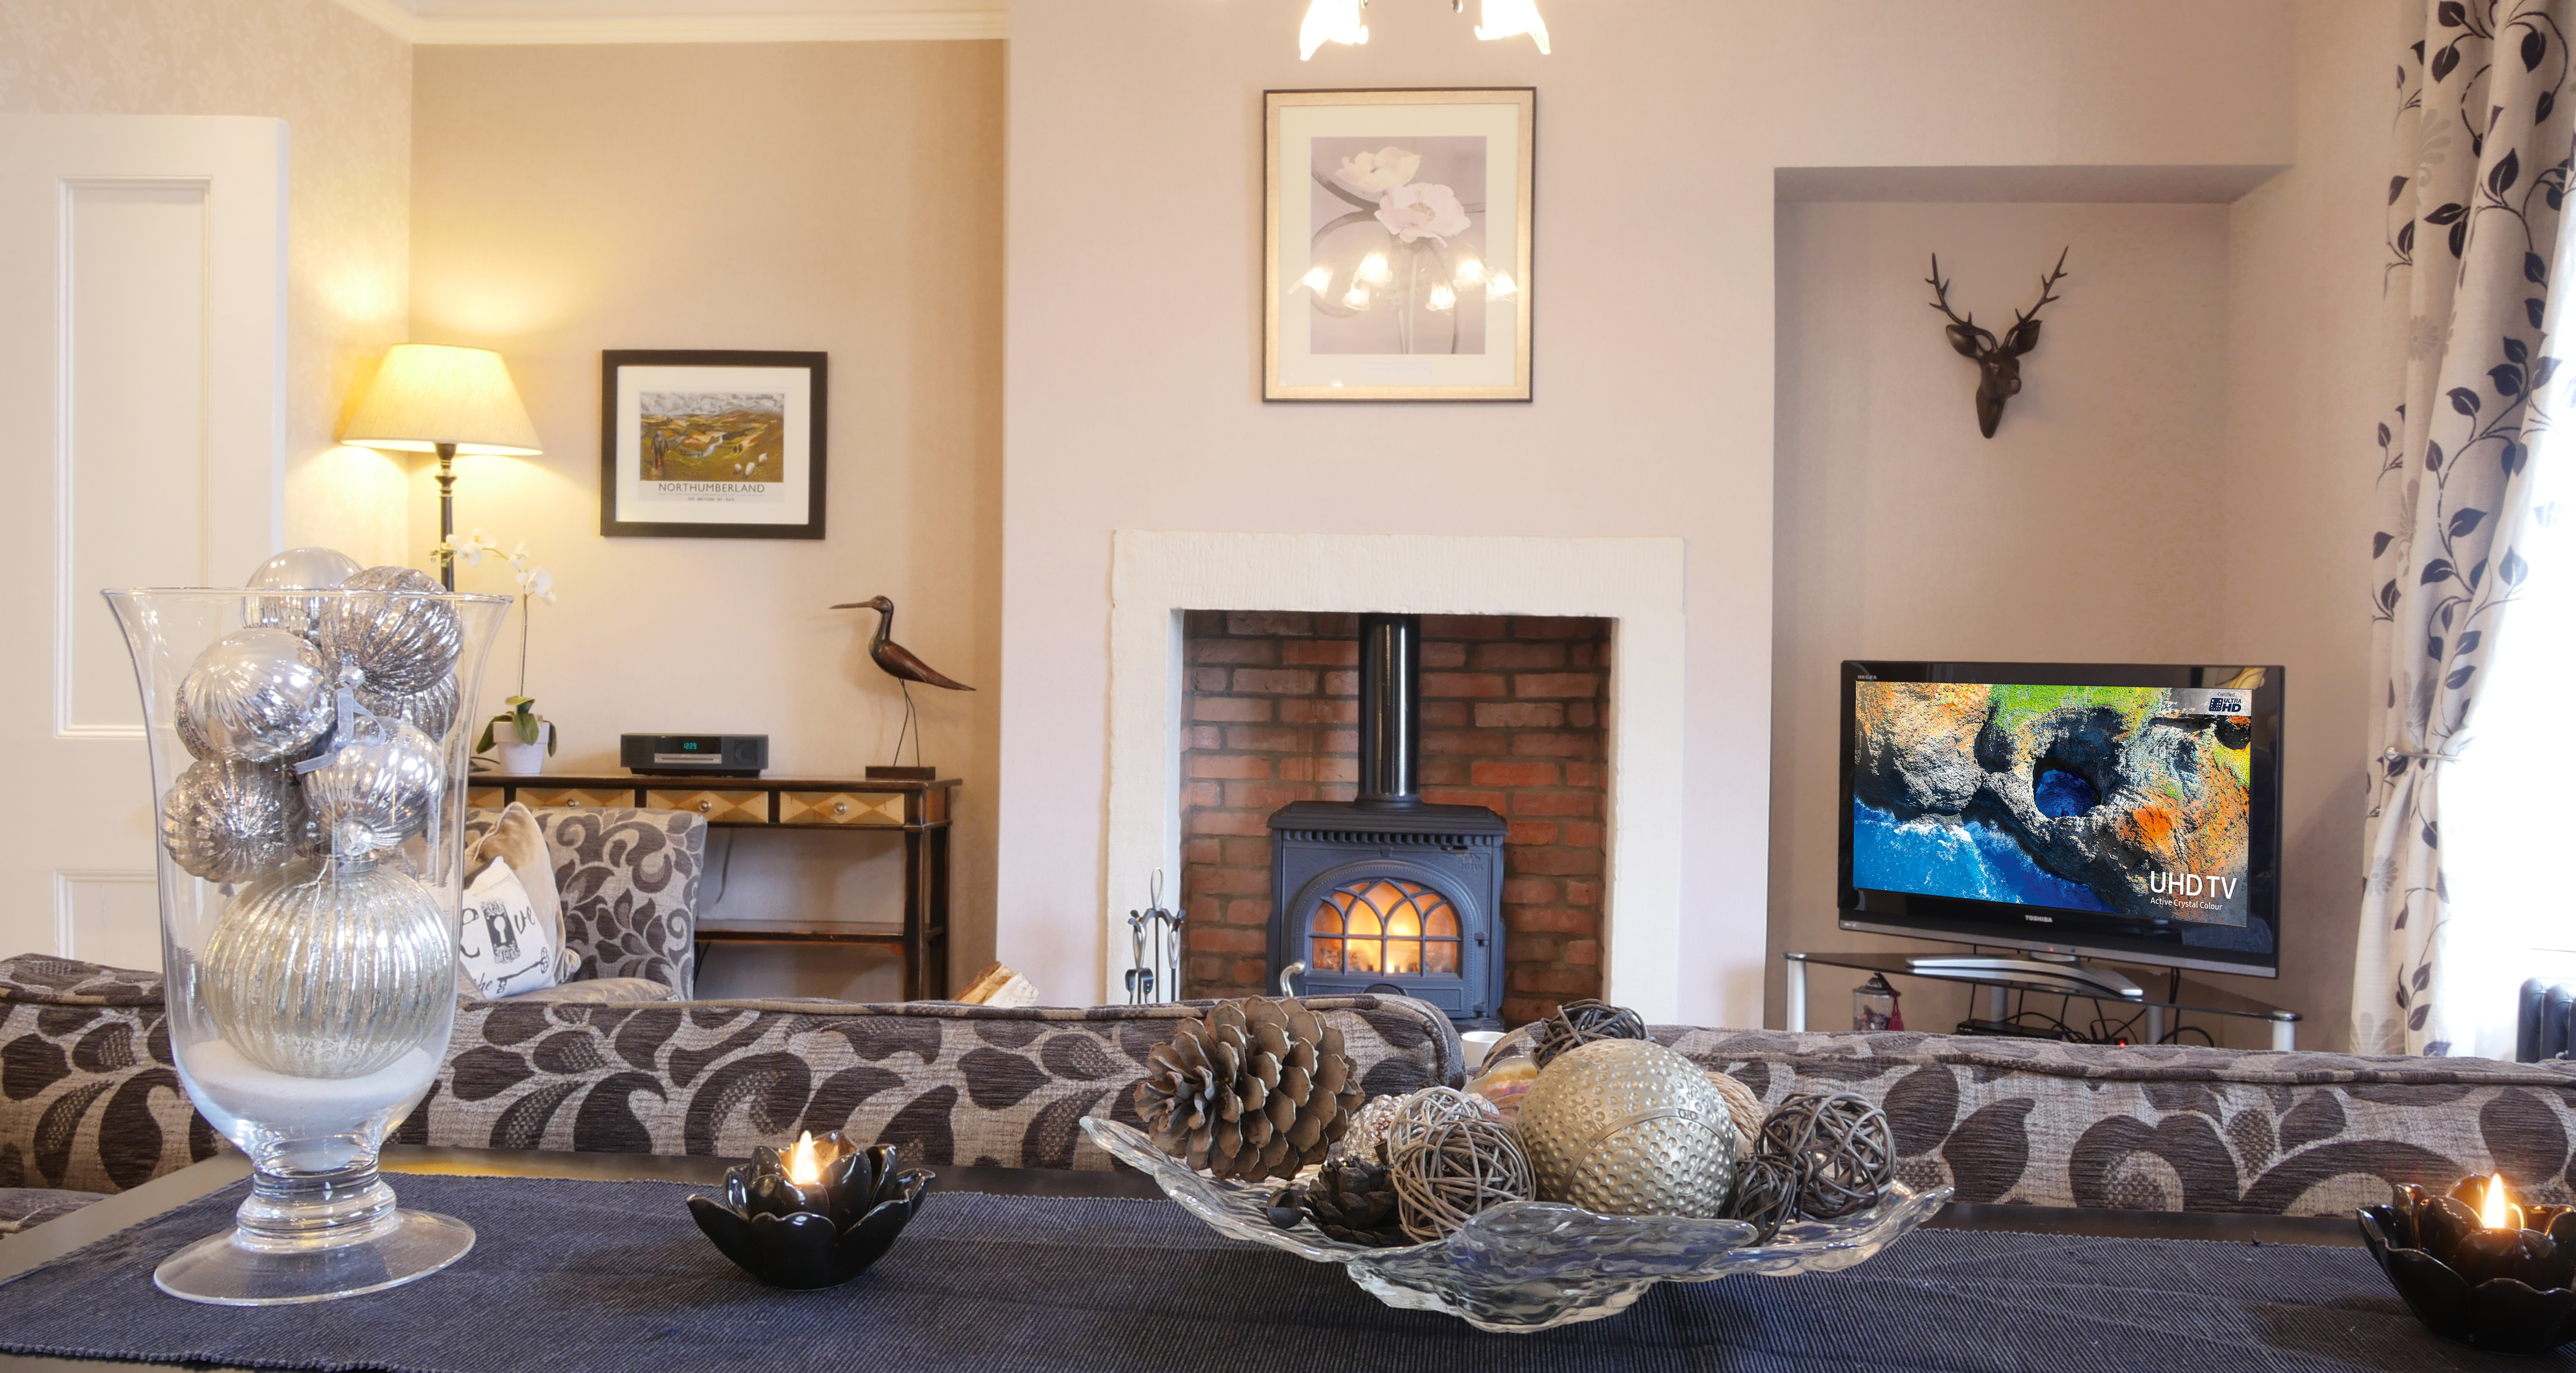 5 star luxury holiday cottage accommodation in Northumberland